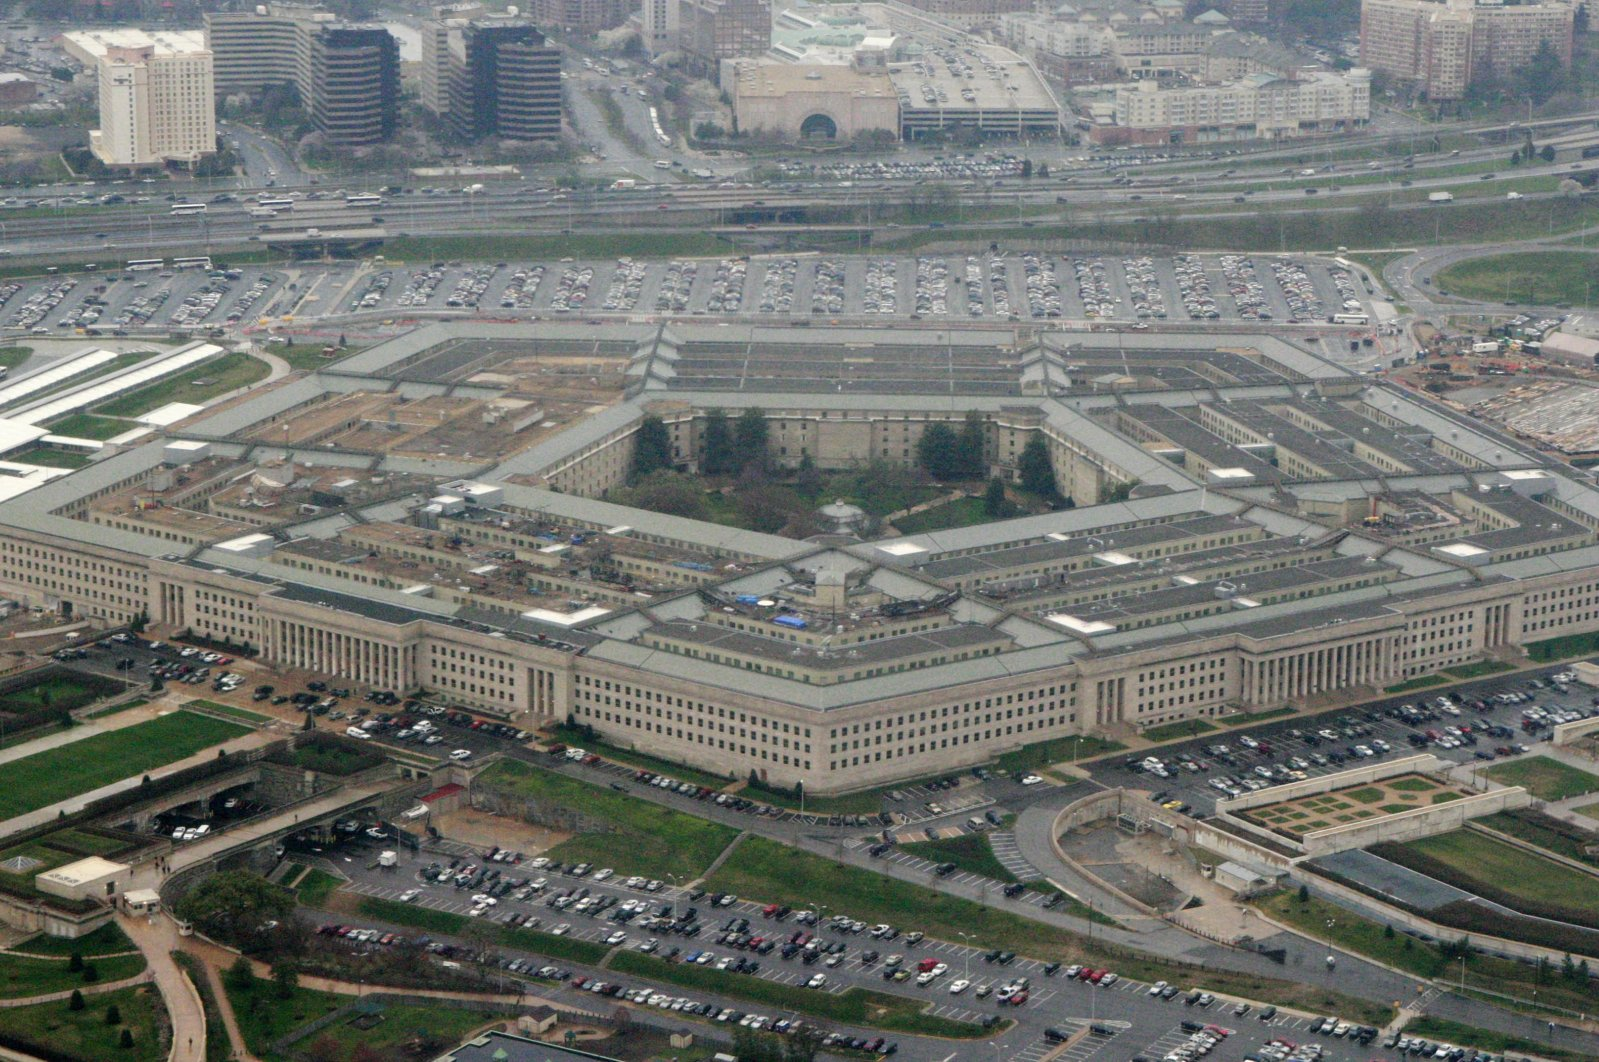 This March 27, 2008, file photo shows the Pentagon in Arlington County, Virginia, U.S. (AP Photo)